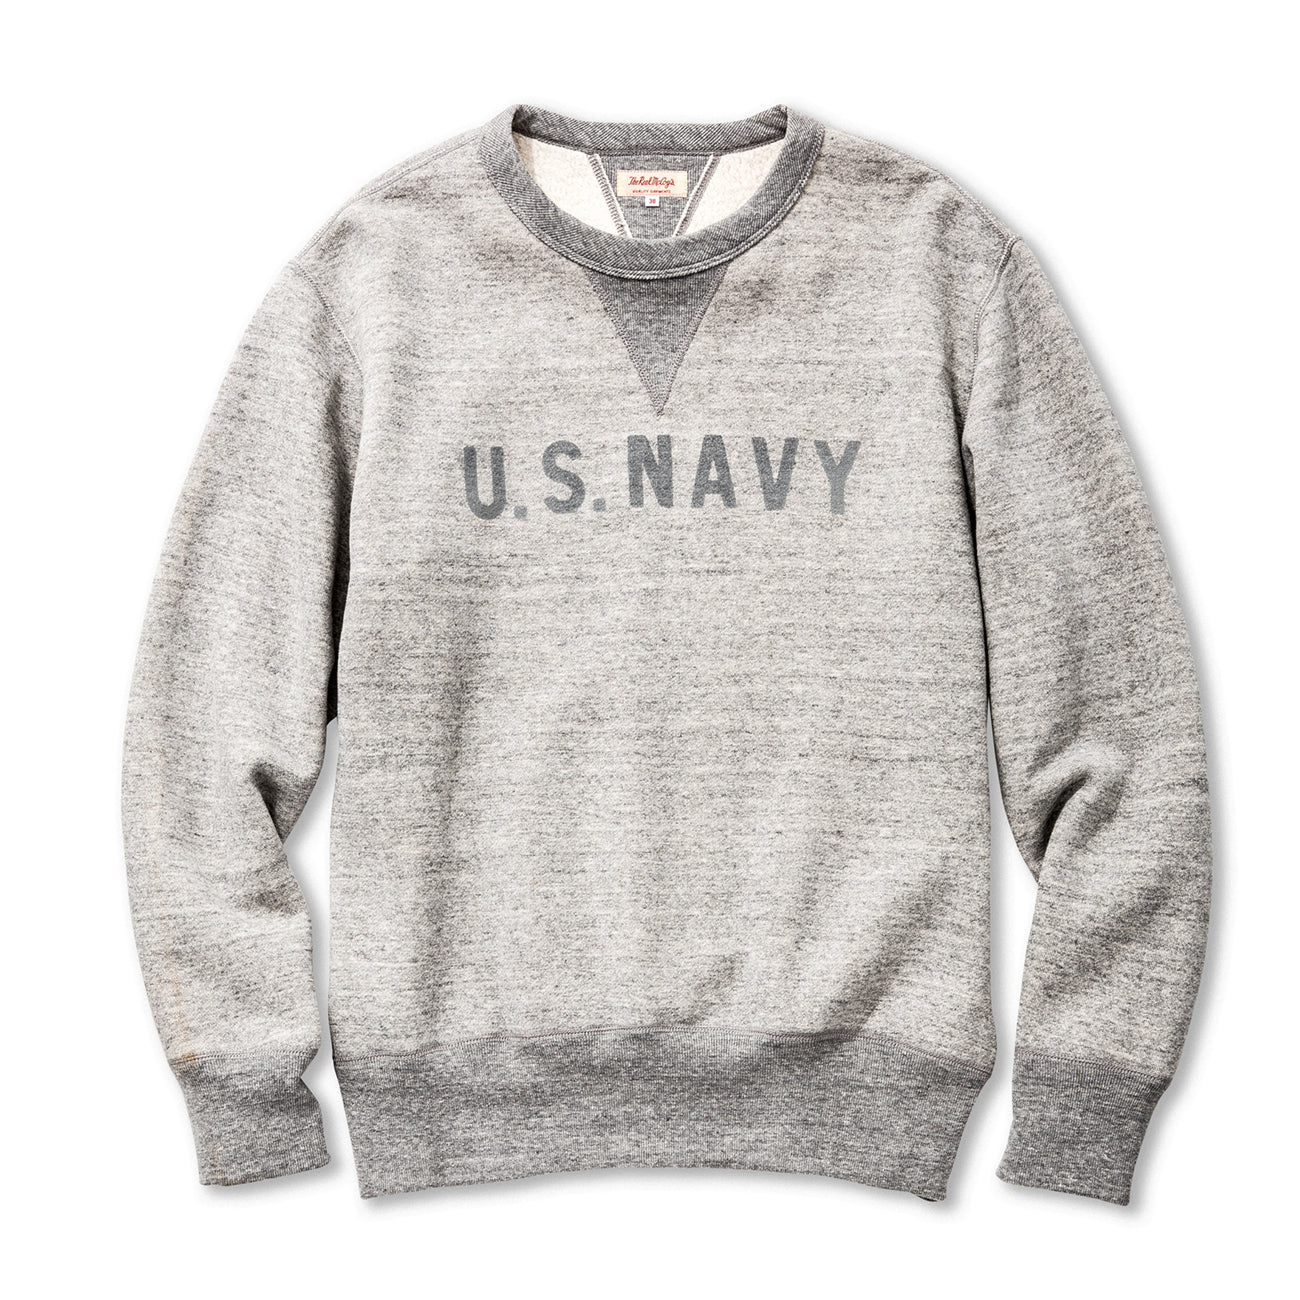 Loopwheel Military Print Sweatshirt / U.S. Navy Reflector